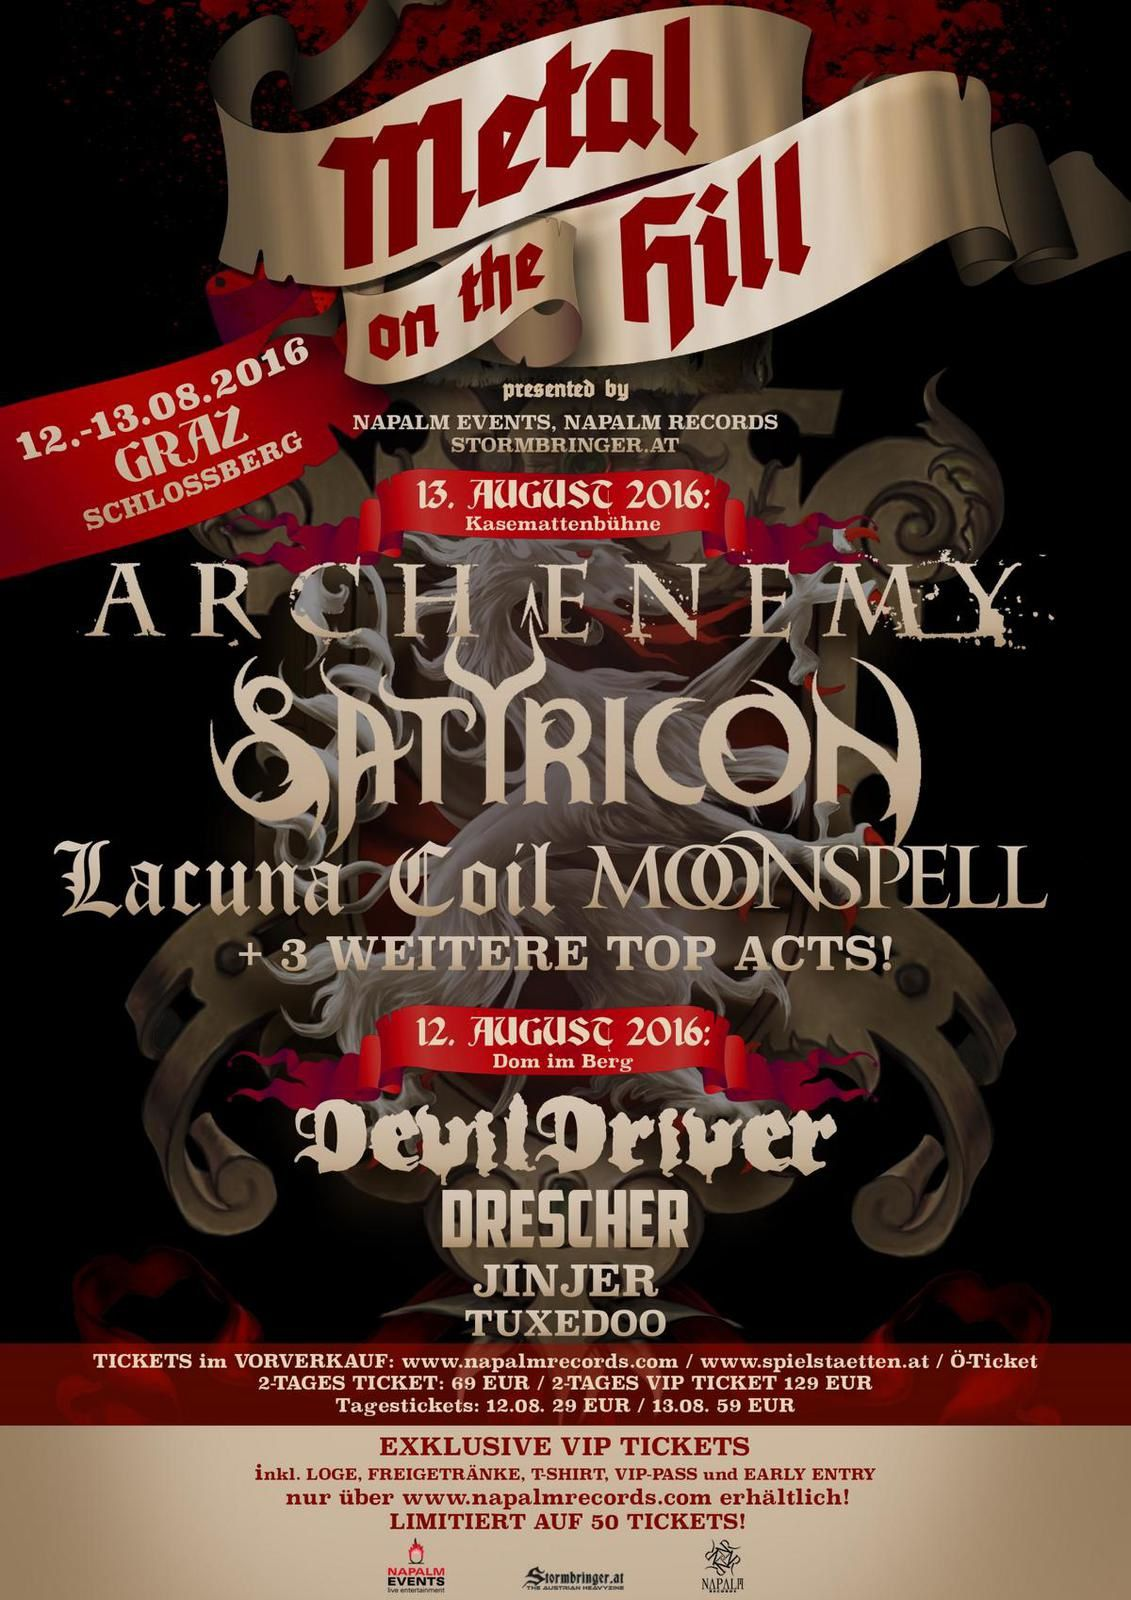 METAL ON THE HILL - new festival in Graz/Austria